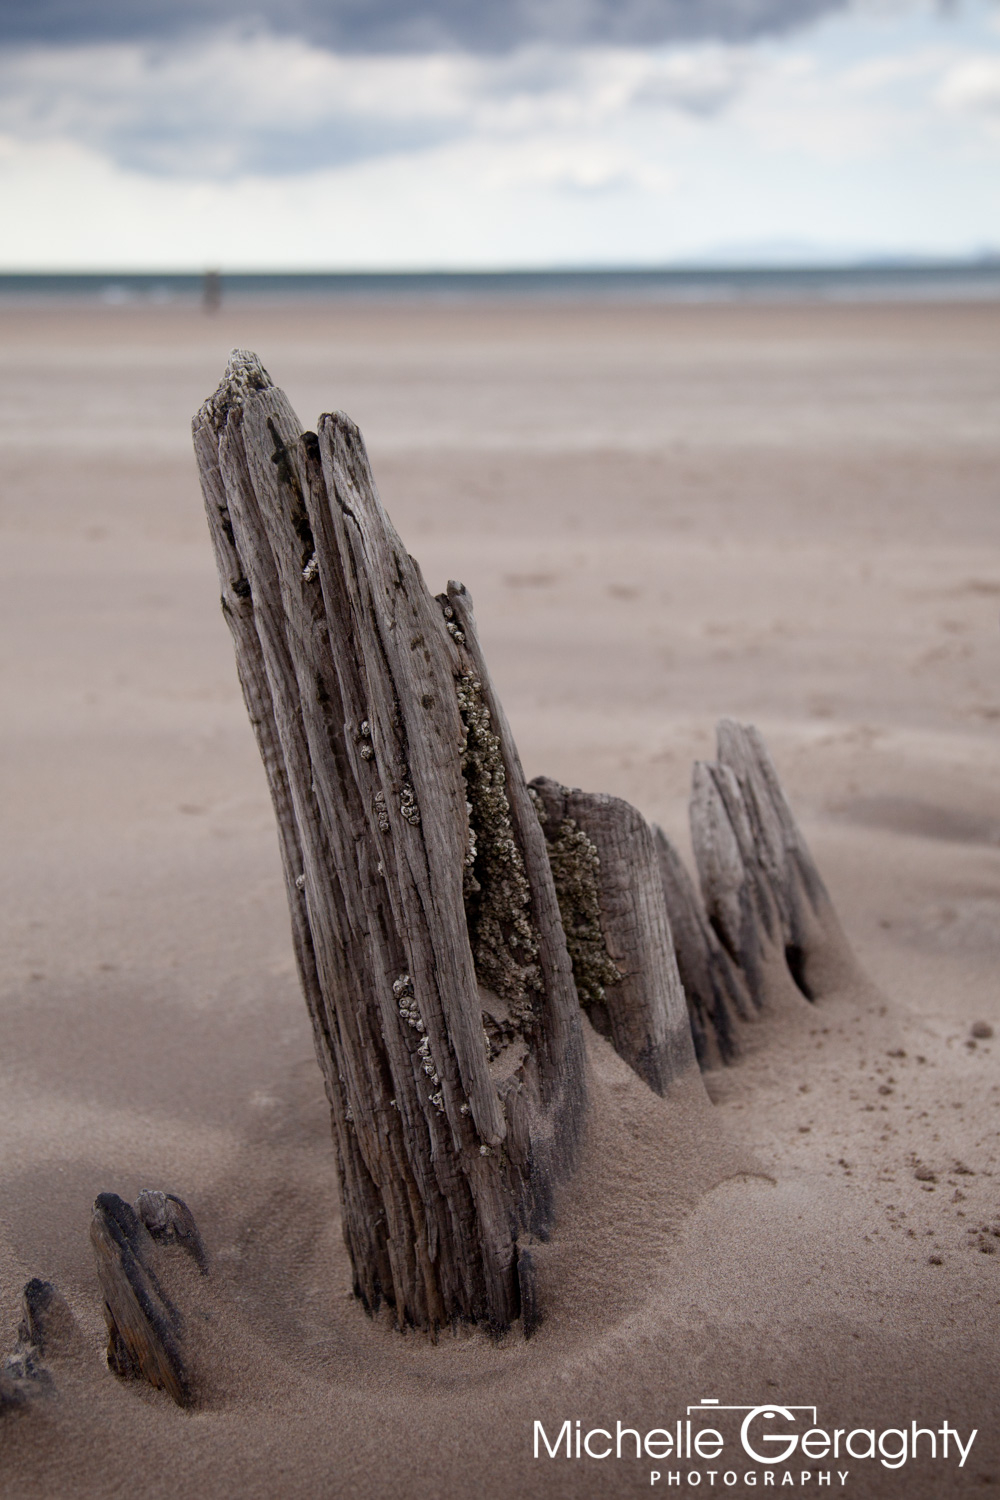 'Sunbeam' Shipwreck on Rossbeigh Beach, Co. Kerry, Ireland